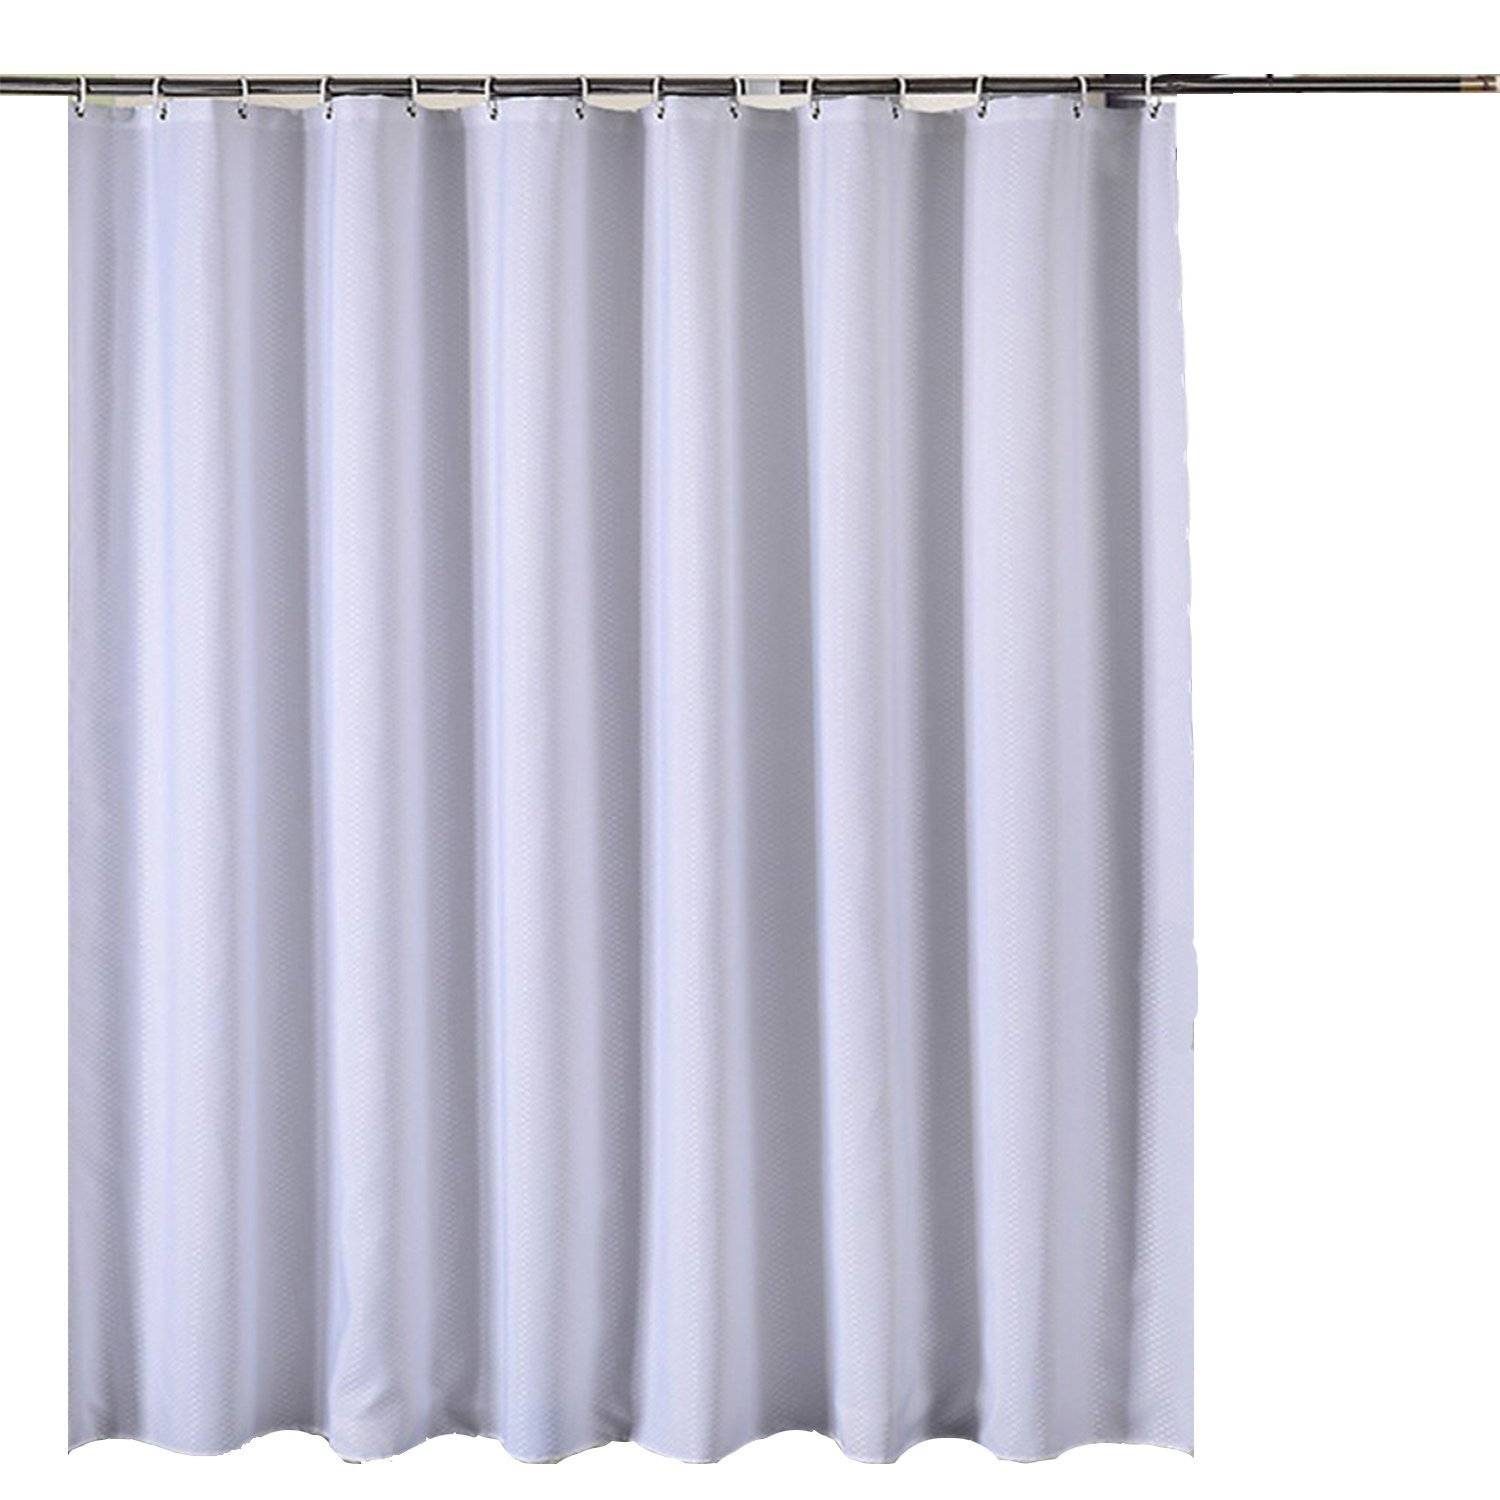 Amazon.com: CHESEY Waffle Weave Cotton Shower Curtain Liner Water ...